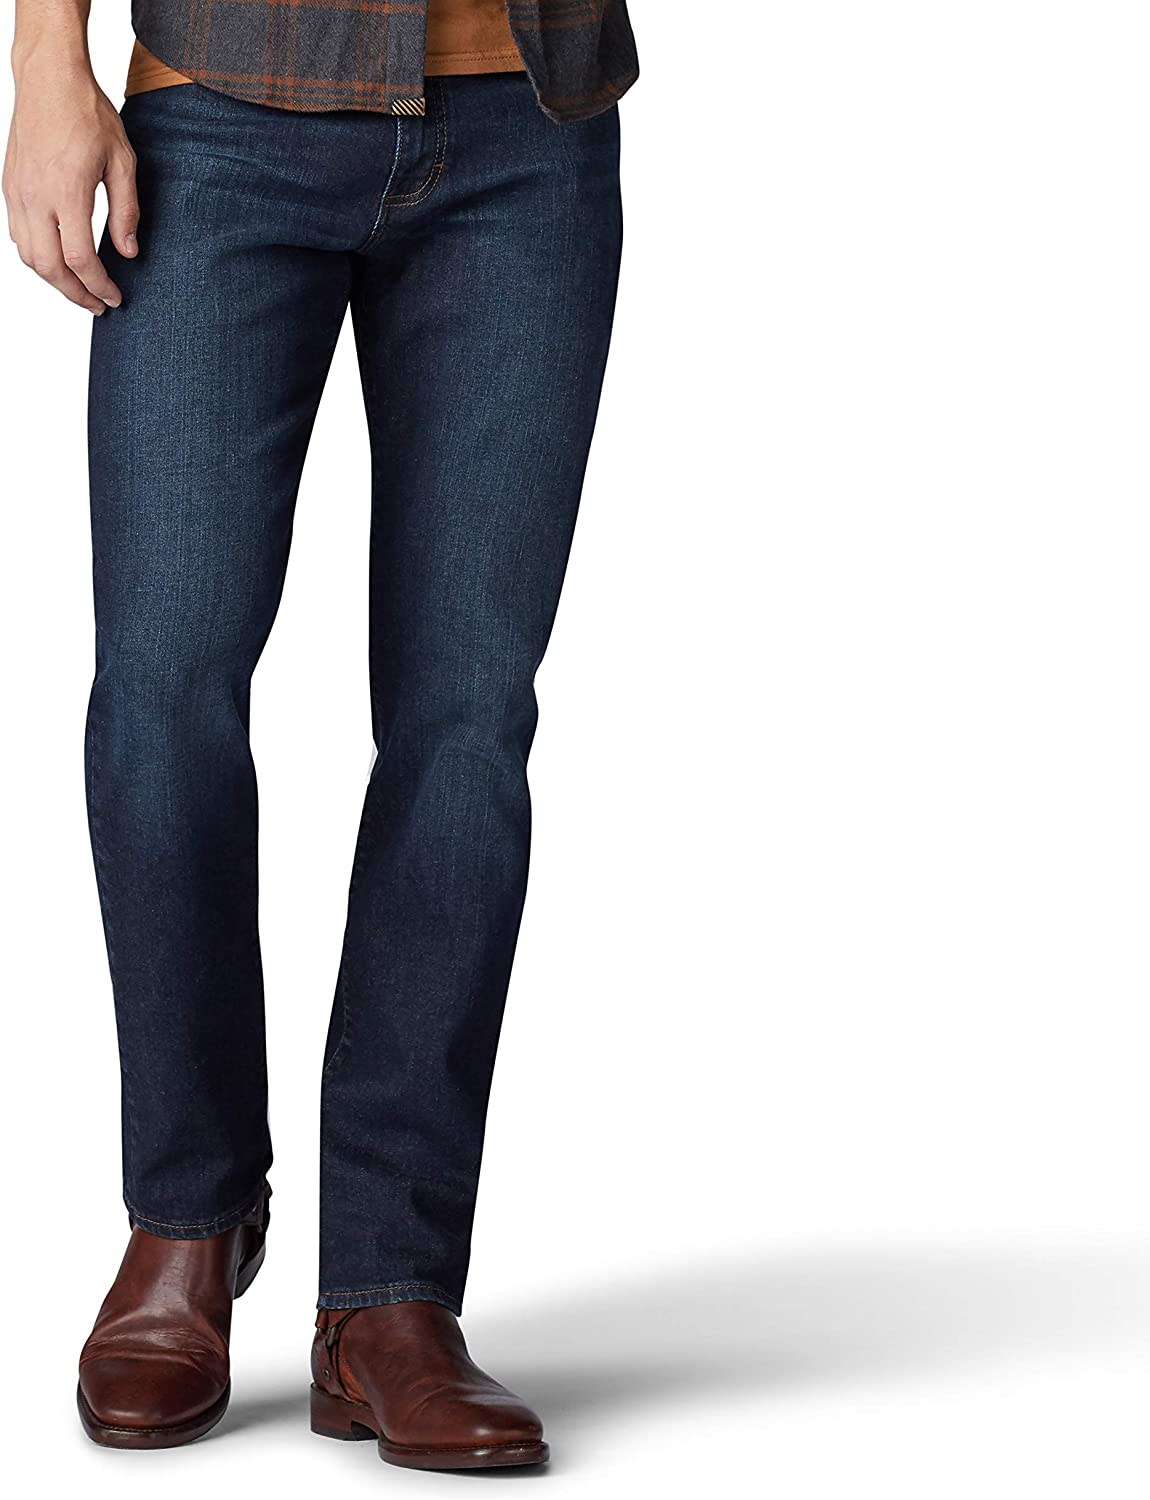 Lee Men's Big New Orleans Mall Tall Performance Sale item Motion Series Straight Extreme